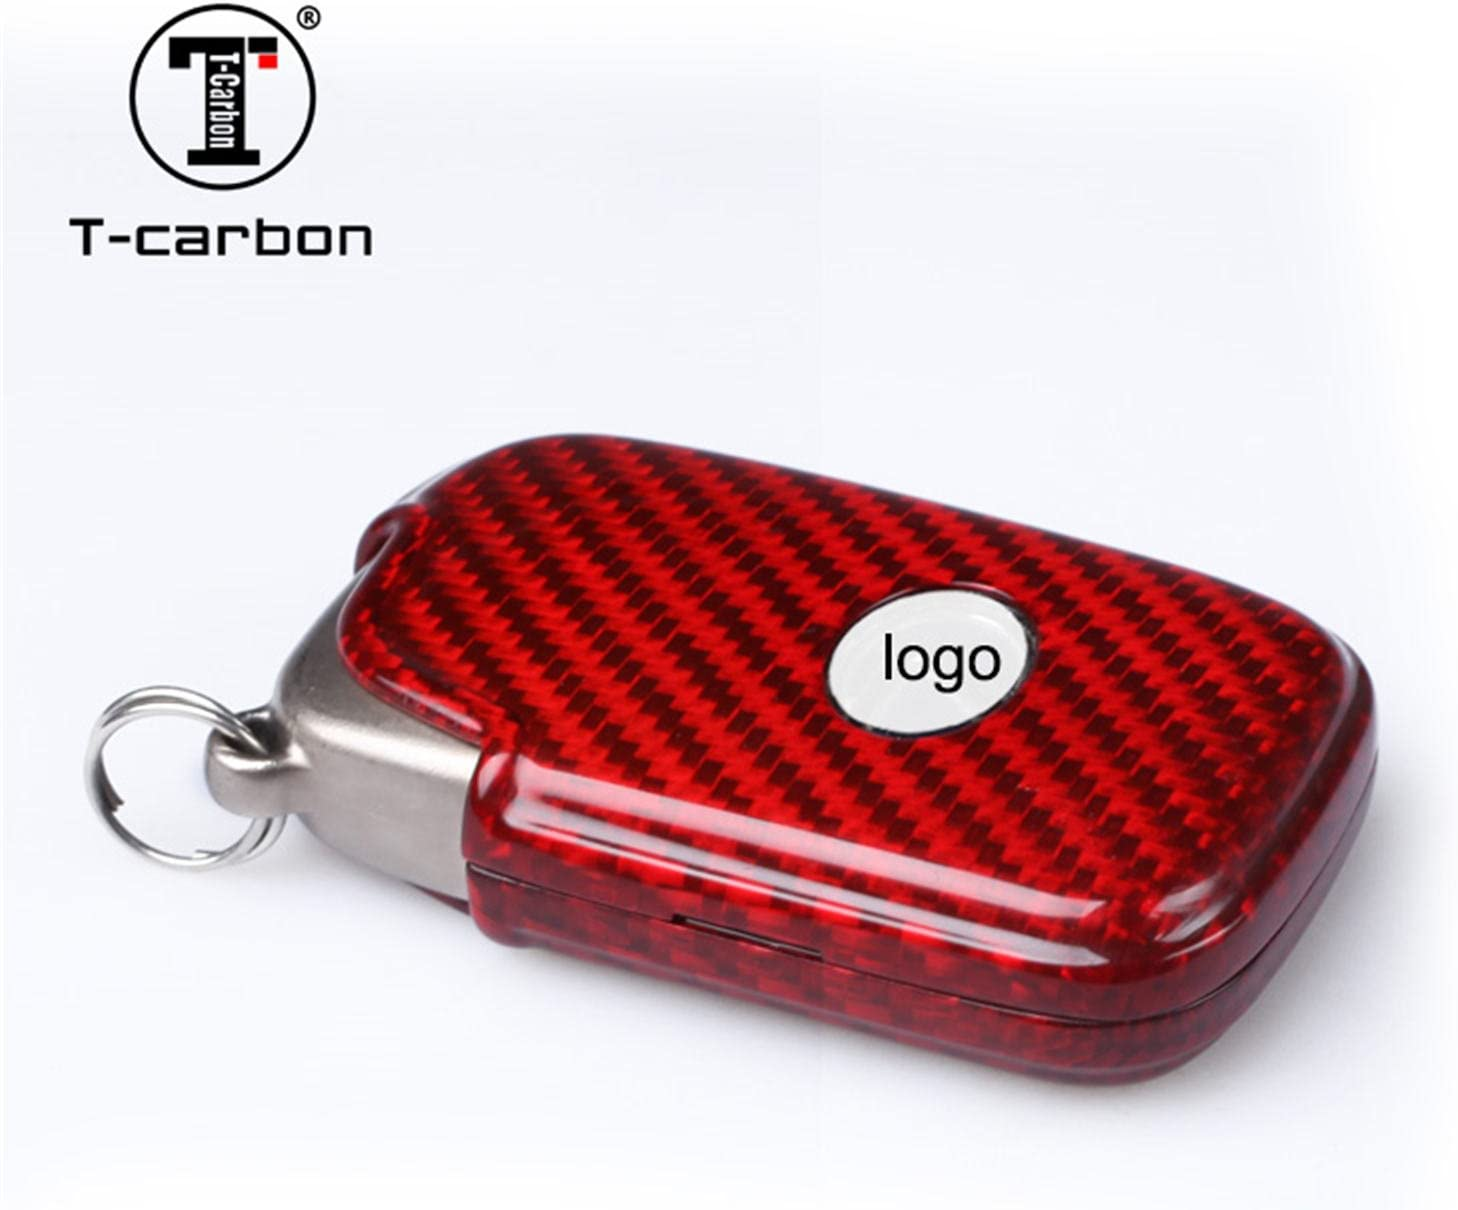 Red Light Weight Glossy Finish Key Fob Protection Case Carbon Fiber Key Fob Cover for Lexus Key Fob Remote Key Fits Lexus GX Lexus CT Lexus SC Lexus LS Smart Keyless Start Stop Engine Car Key